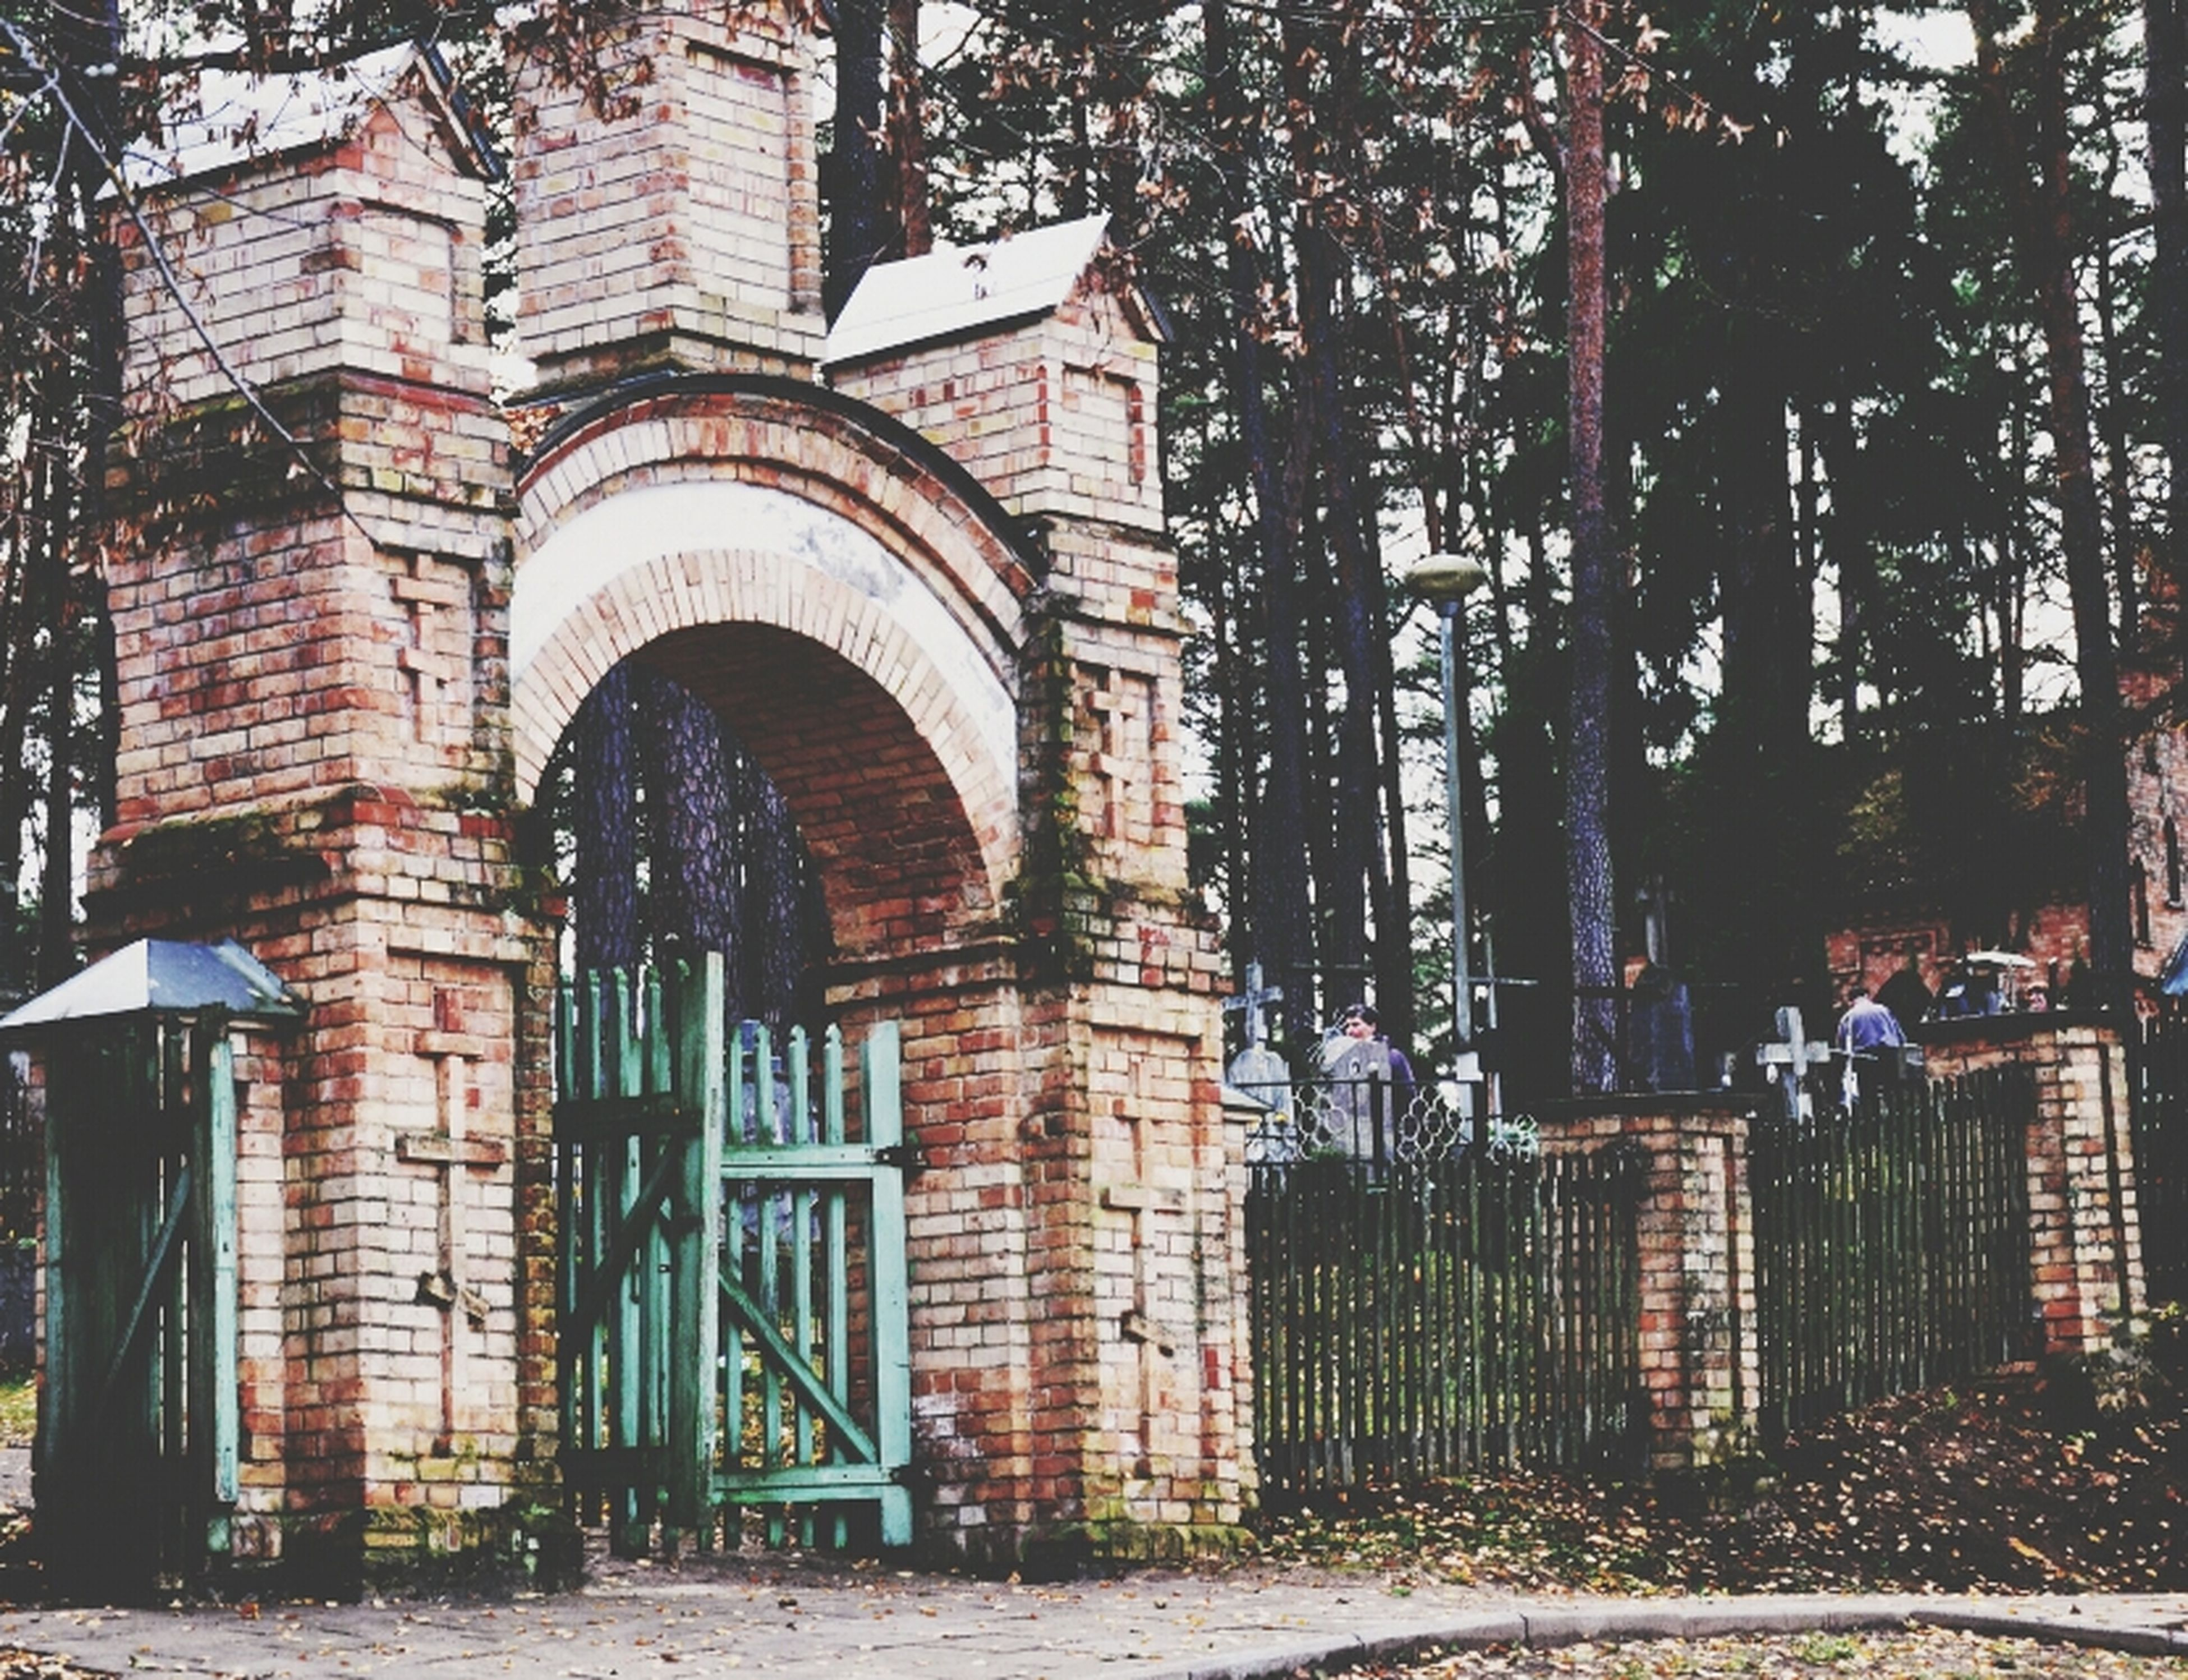 architecture, built structure, building exterior, tree, arch, building, old, entrance, facade, gate, window, house, outdoors, door, day, residential structure, tree trunk, residential building, brick wall, bare tree